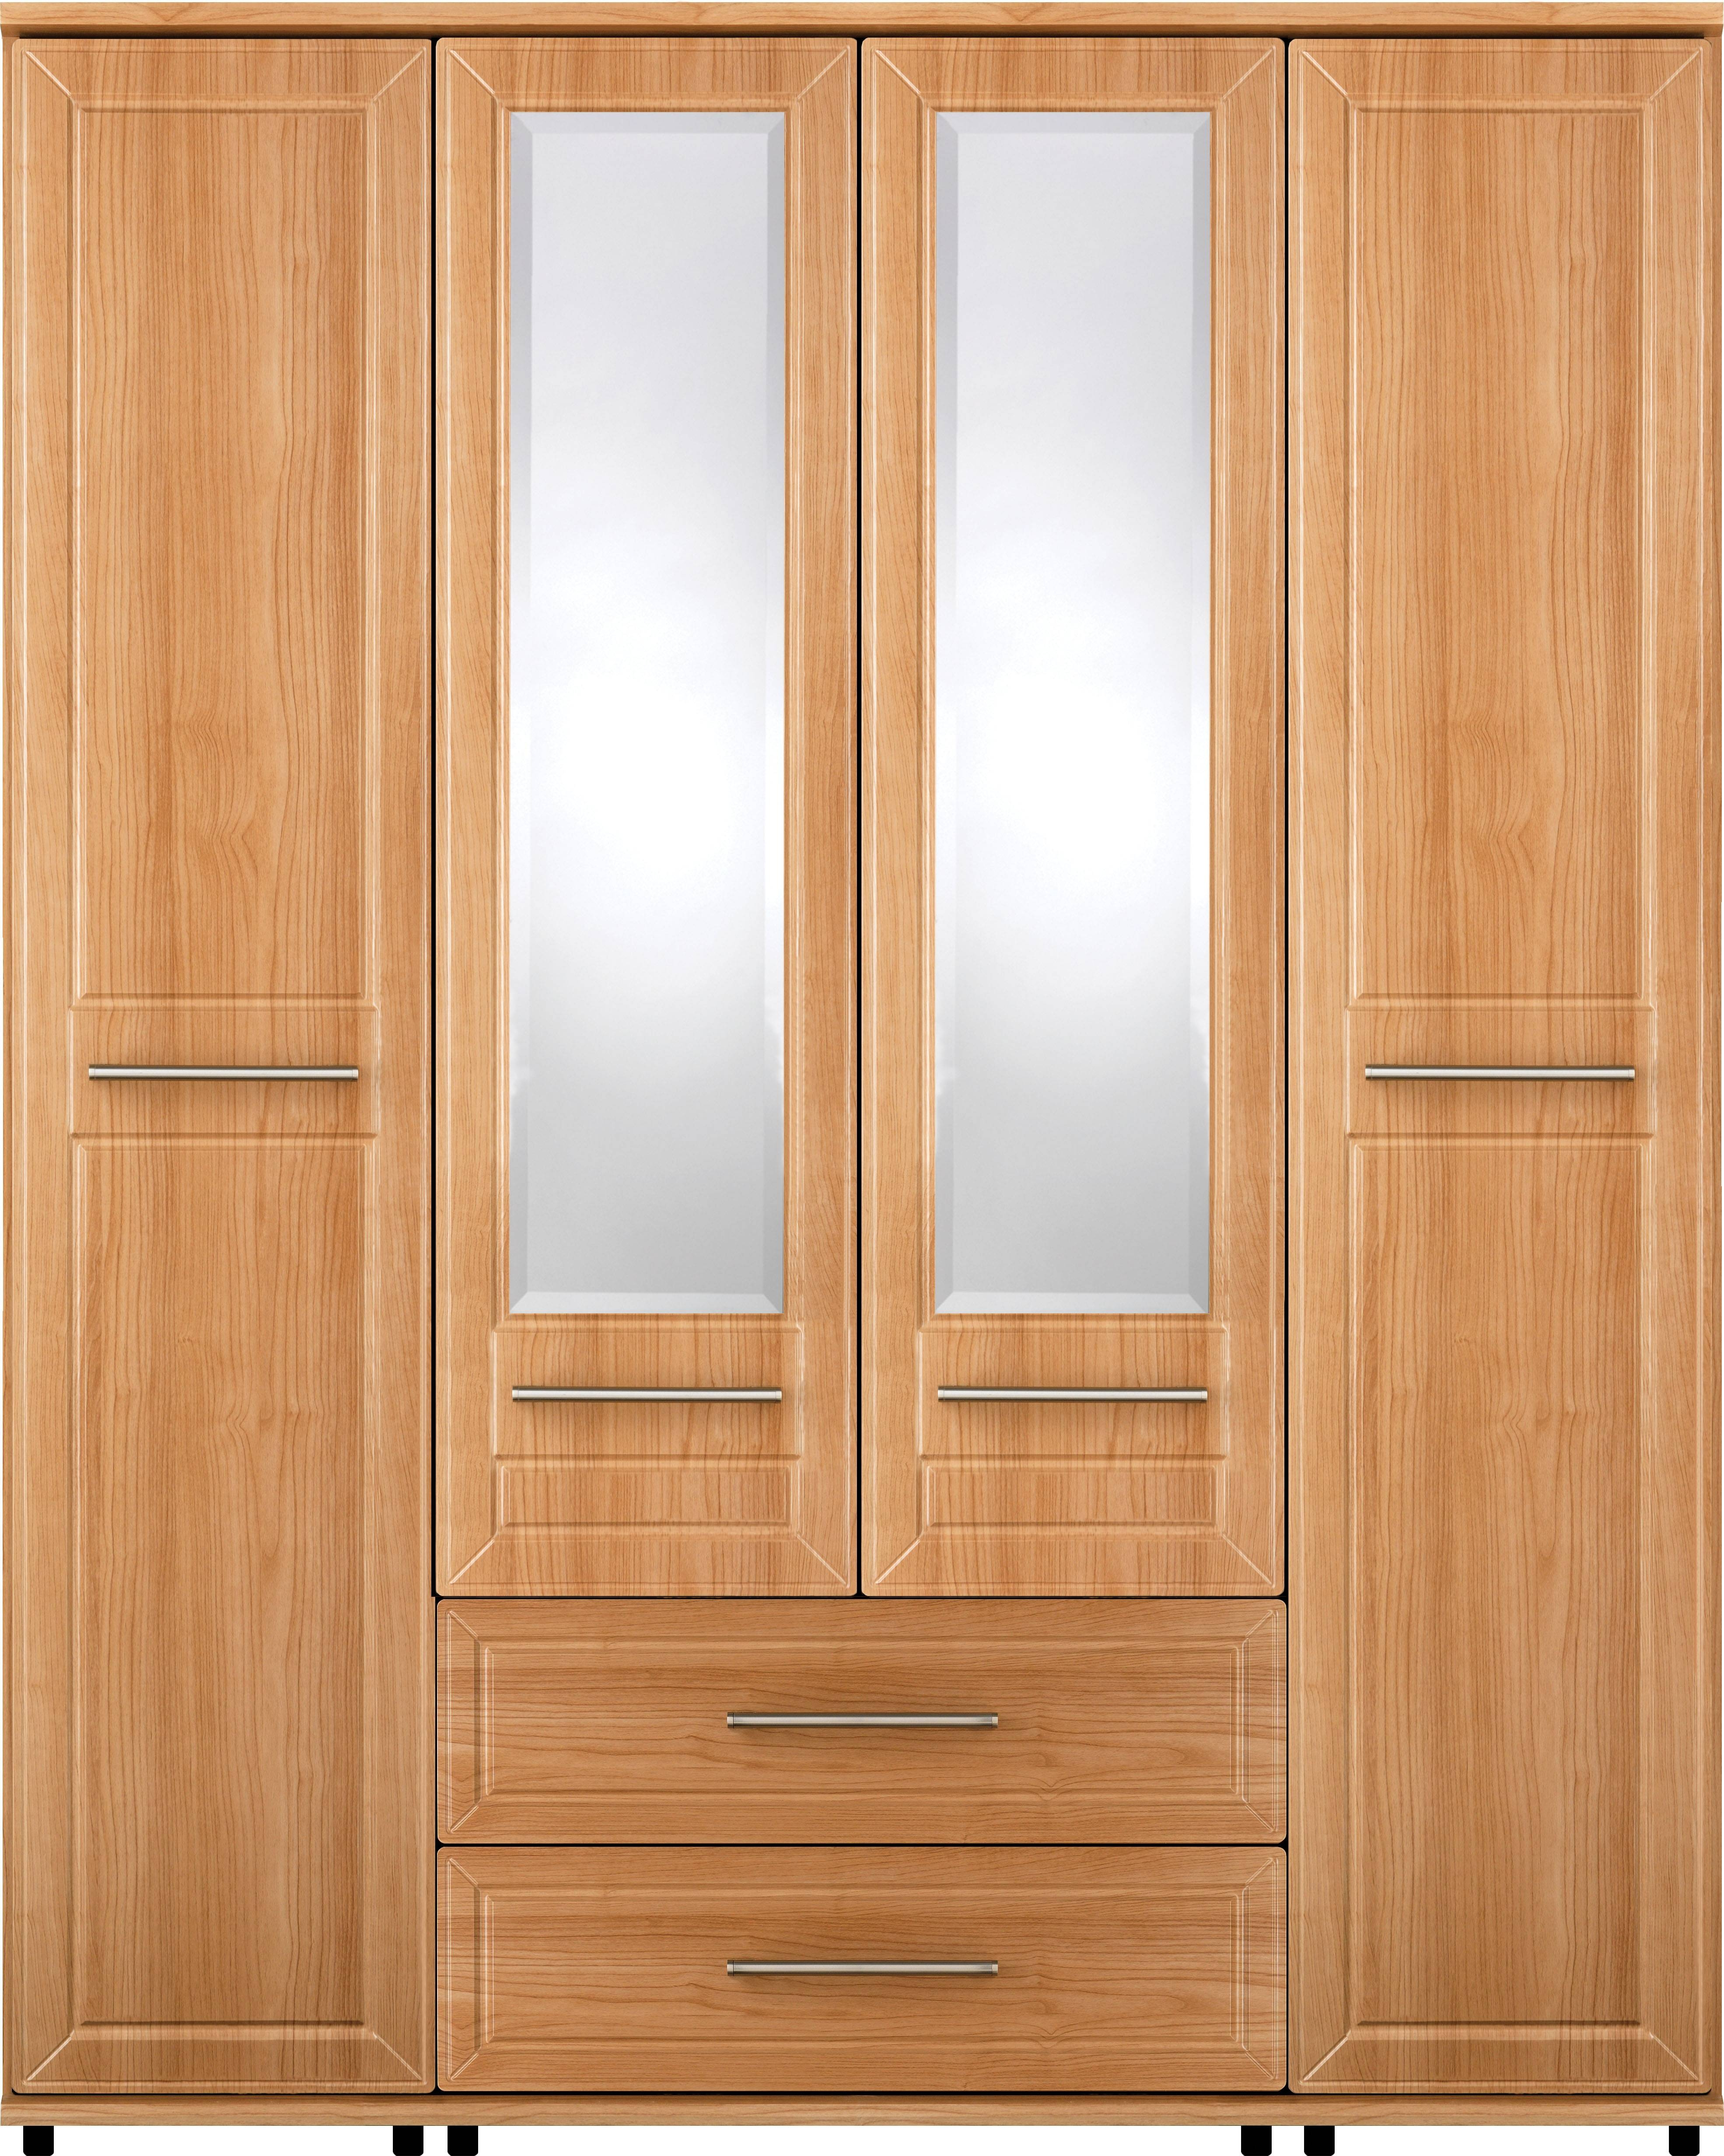 Lewknor Wardrobe With 4 Doors, 2 Drawers And 2 Mirrors | Crendon in Wardrobes 4 Doors (Image 10 of 15)